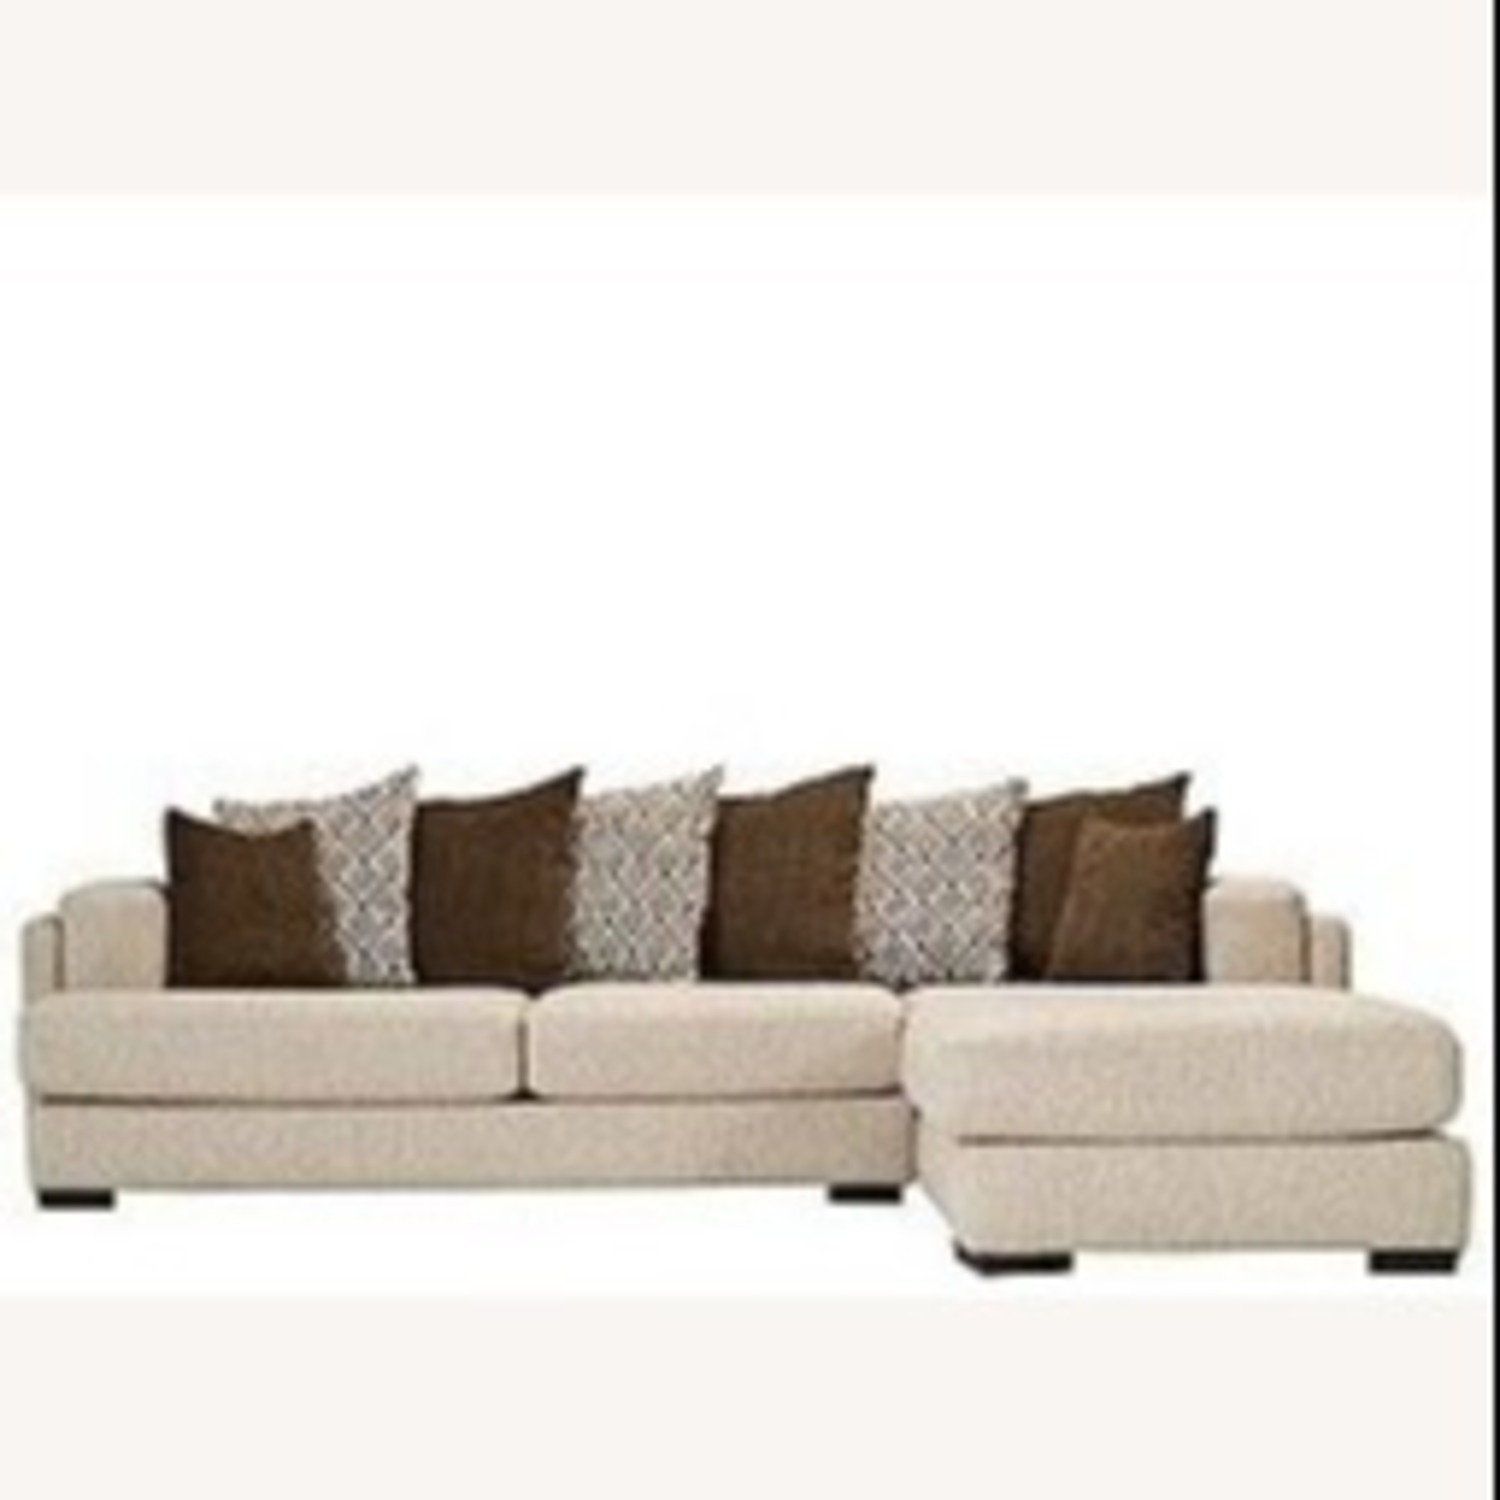 Raymour & Flanigan Urbanity 2 Piece Sectional with Chaise - image-0